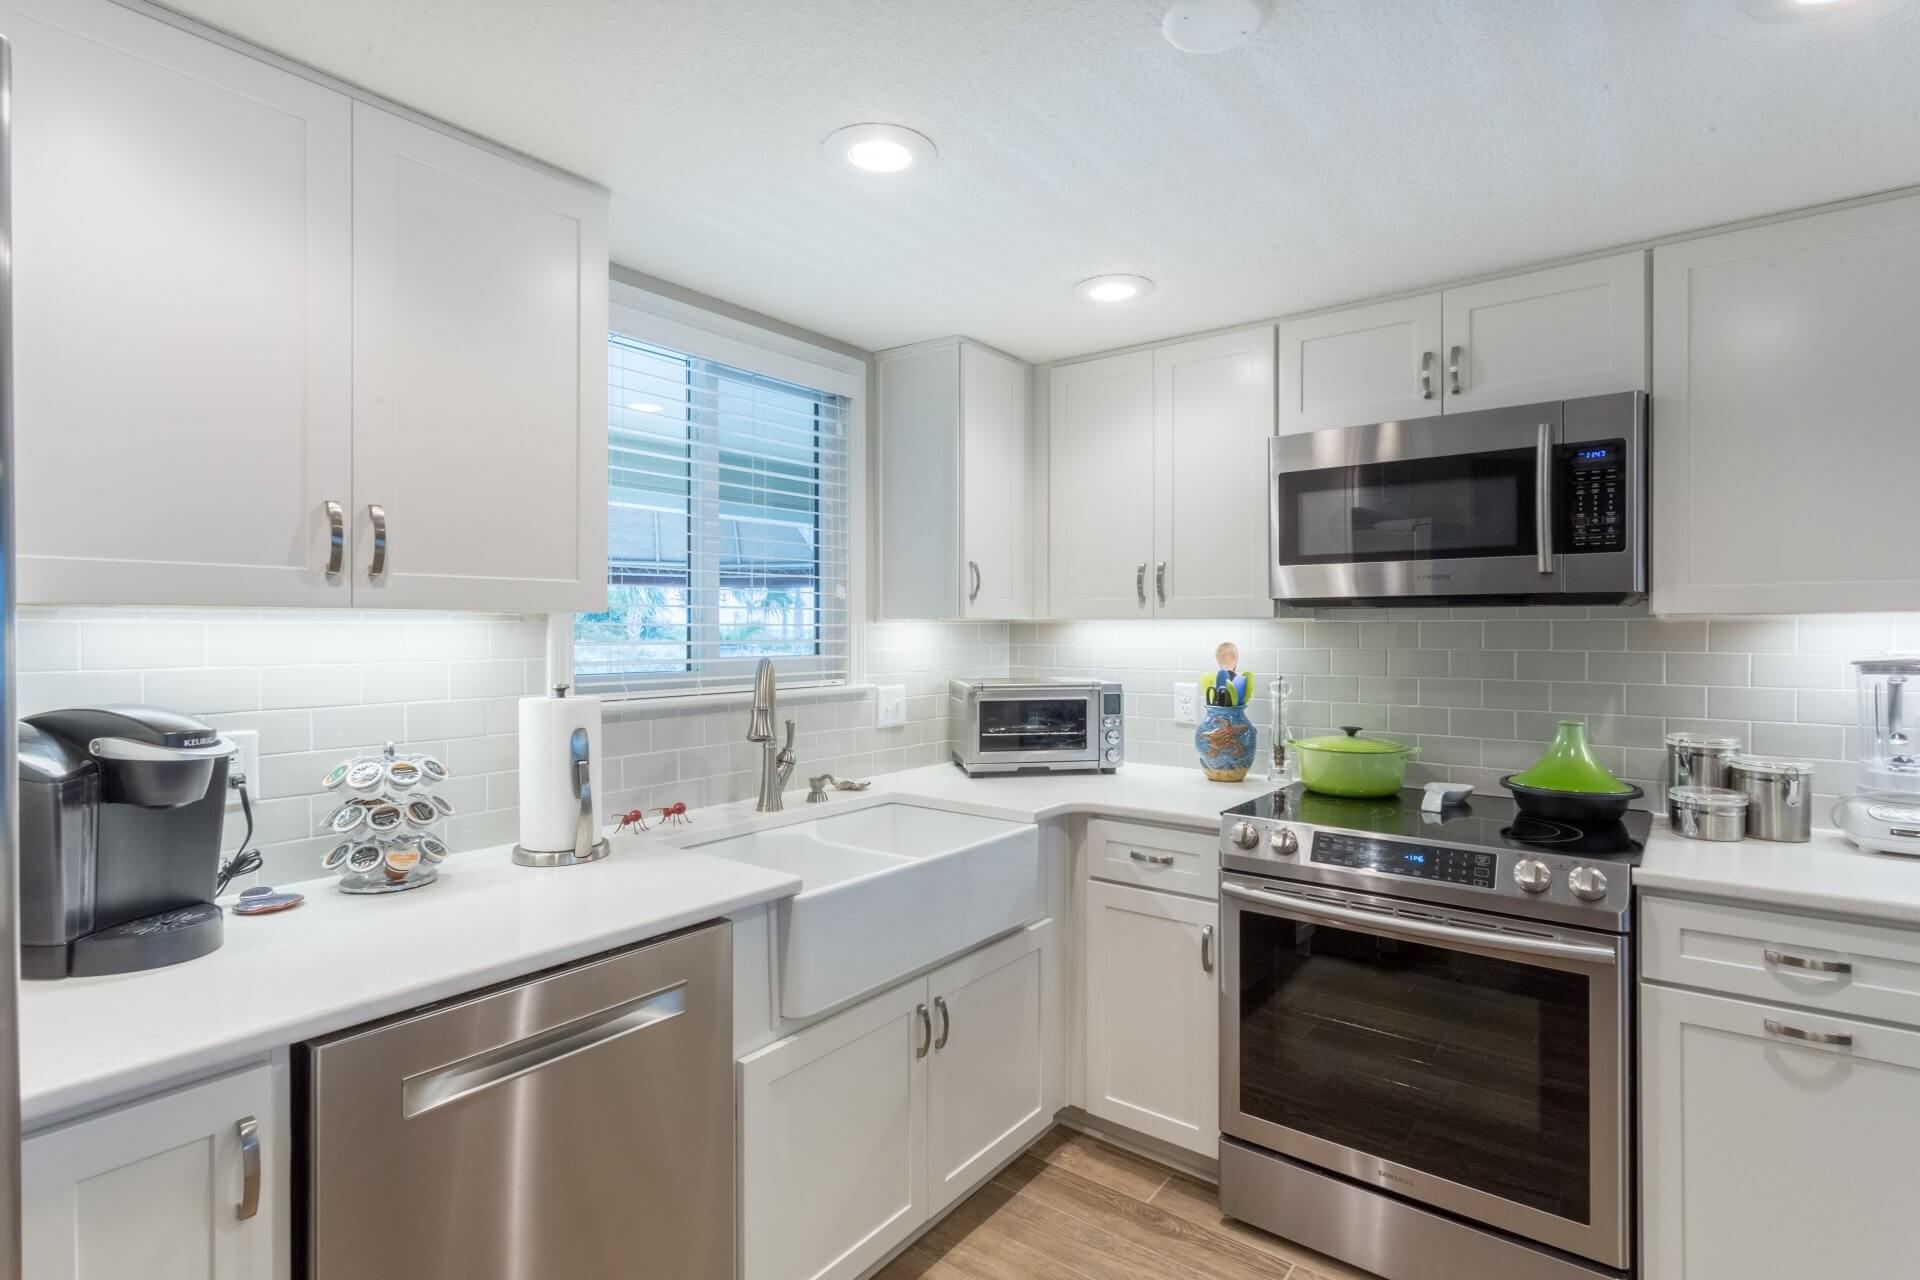 kitchen cabinets knobs and pulls how to refurbish pensacola beach house remodel by cabinet depot